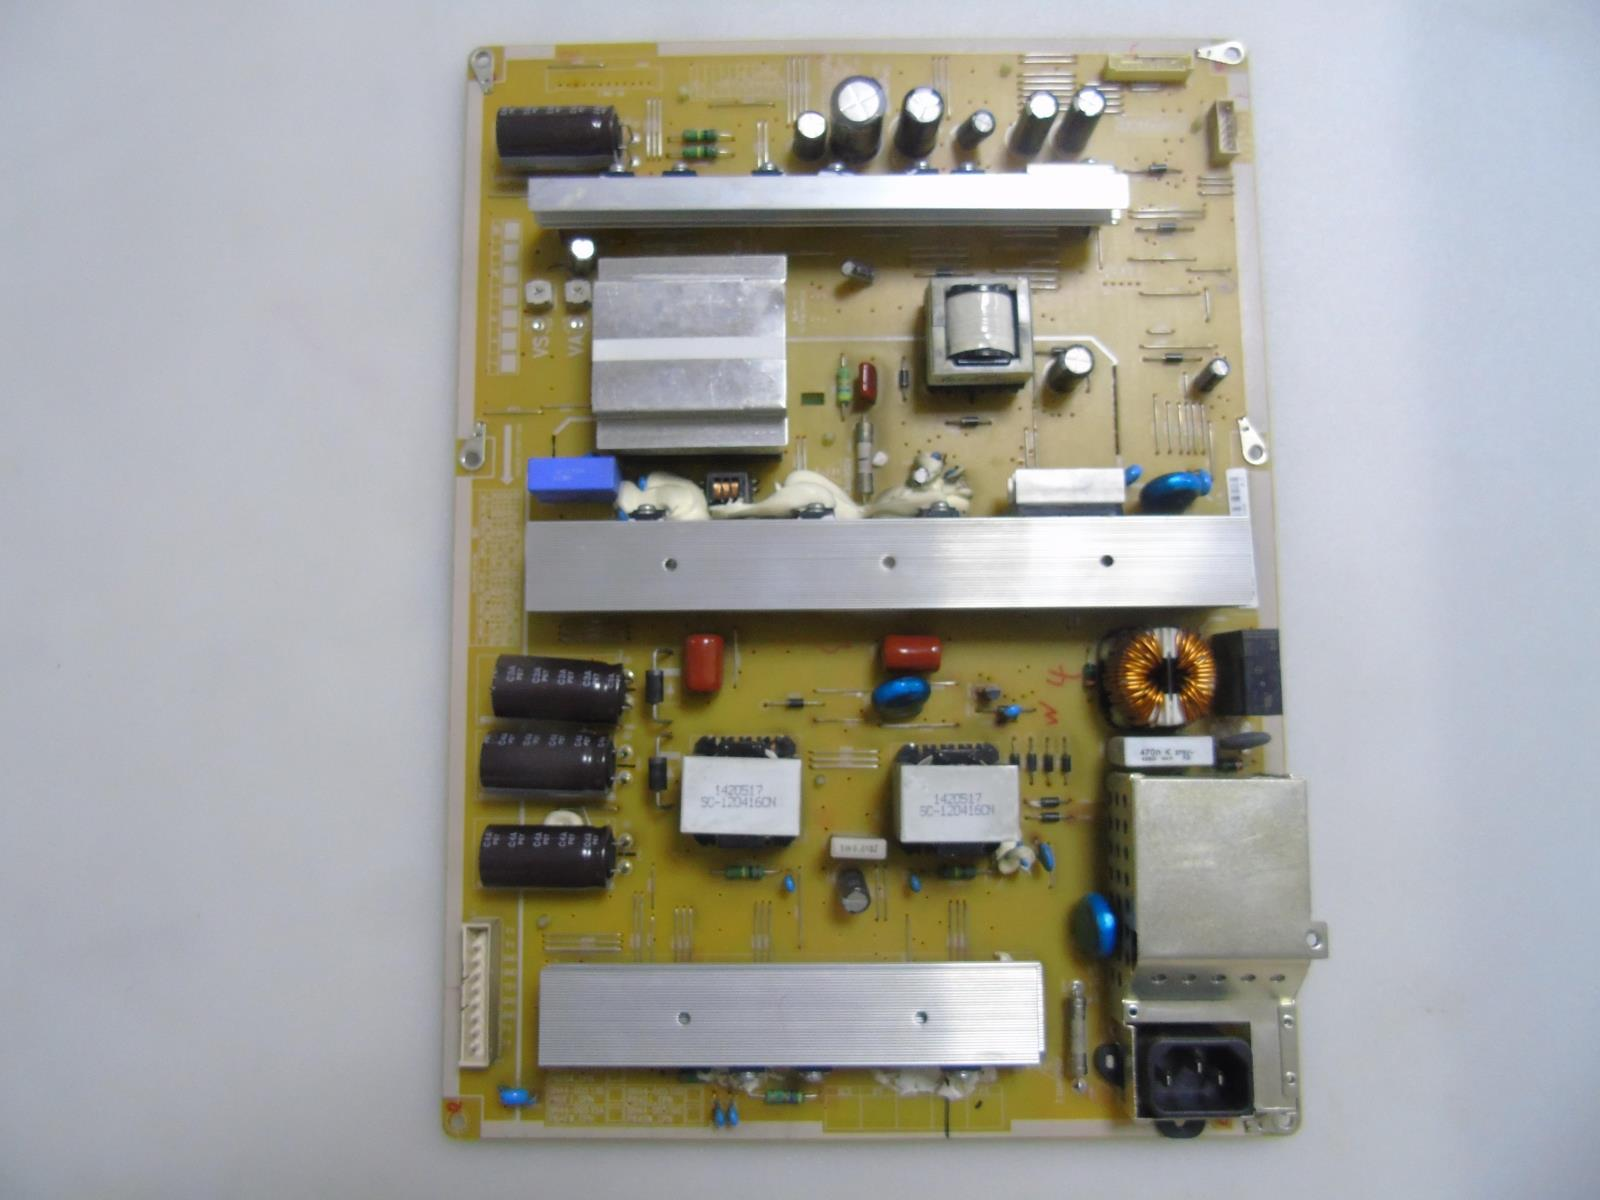 Samsung BN44-00516A P64SW_CPN IP-556420A Power Supply